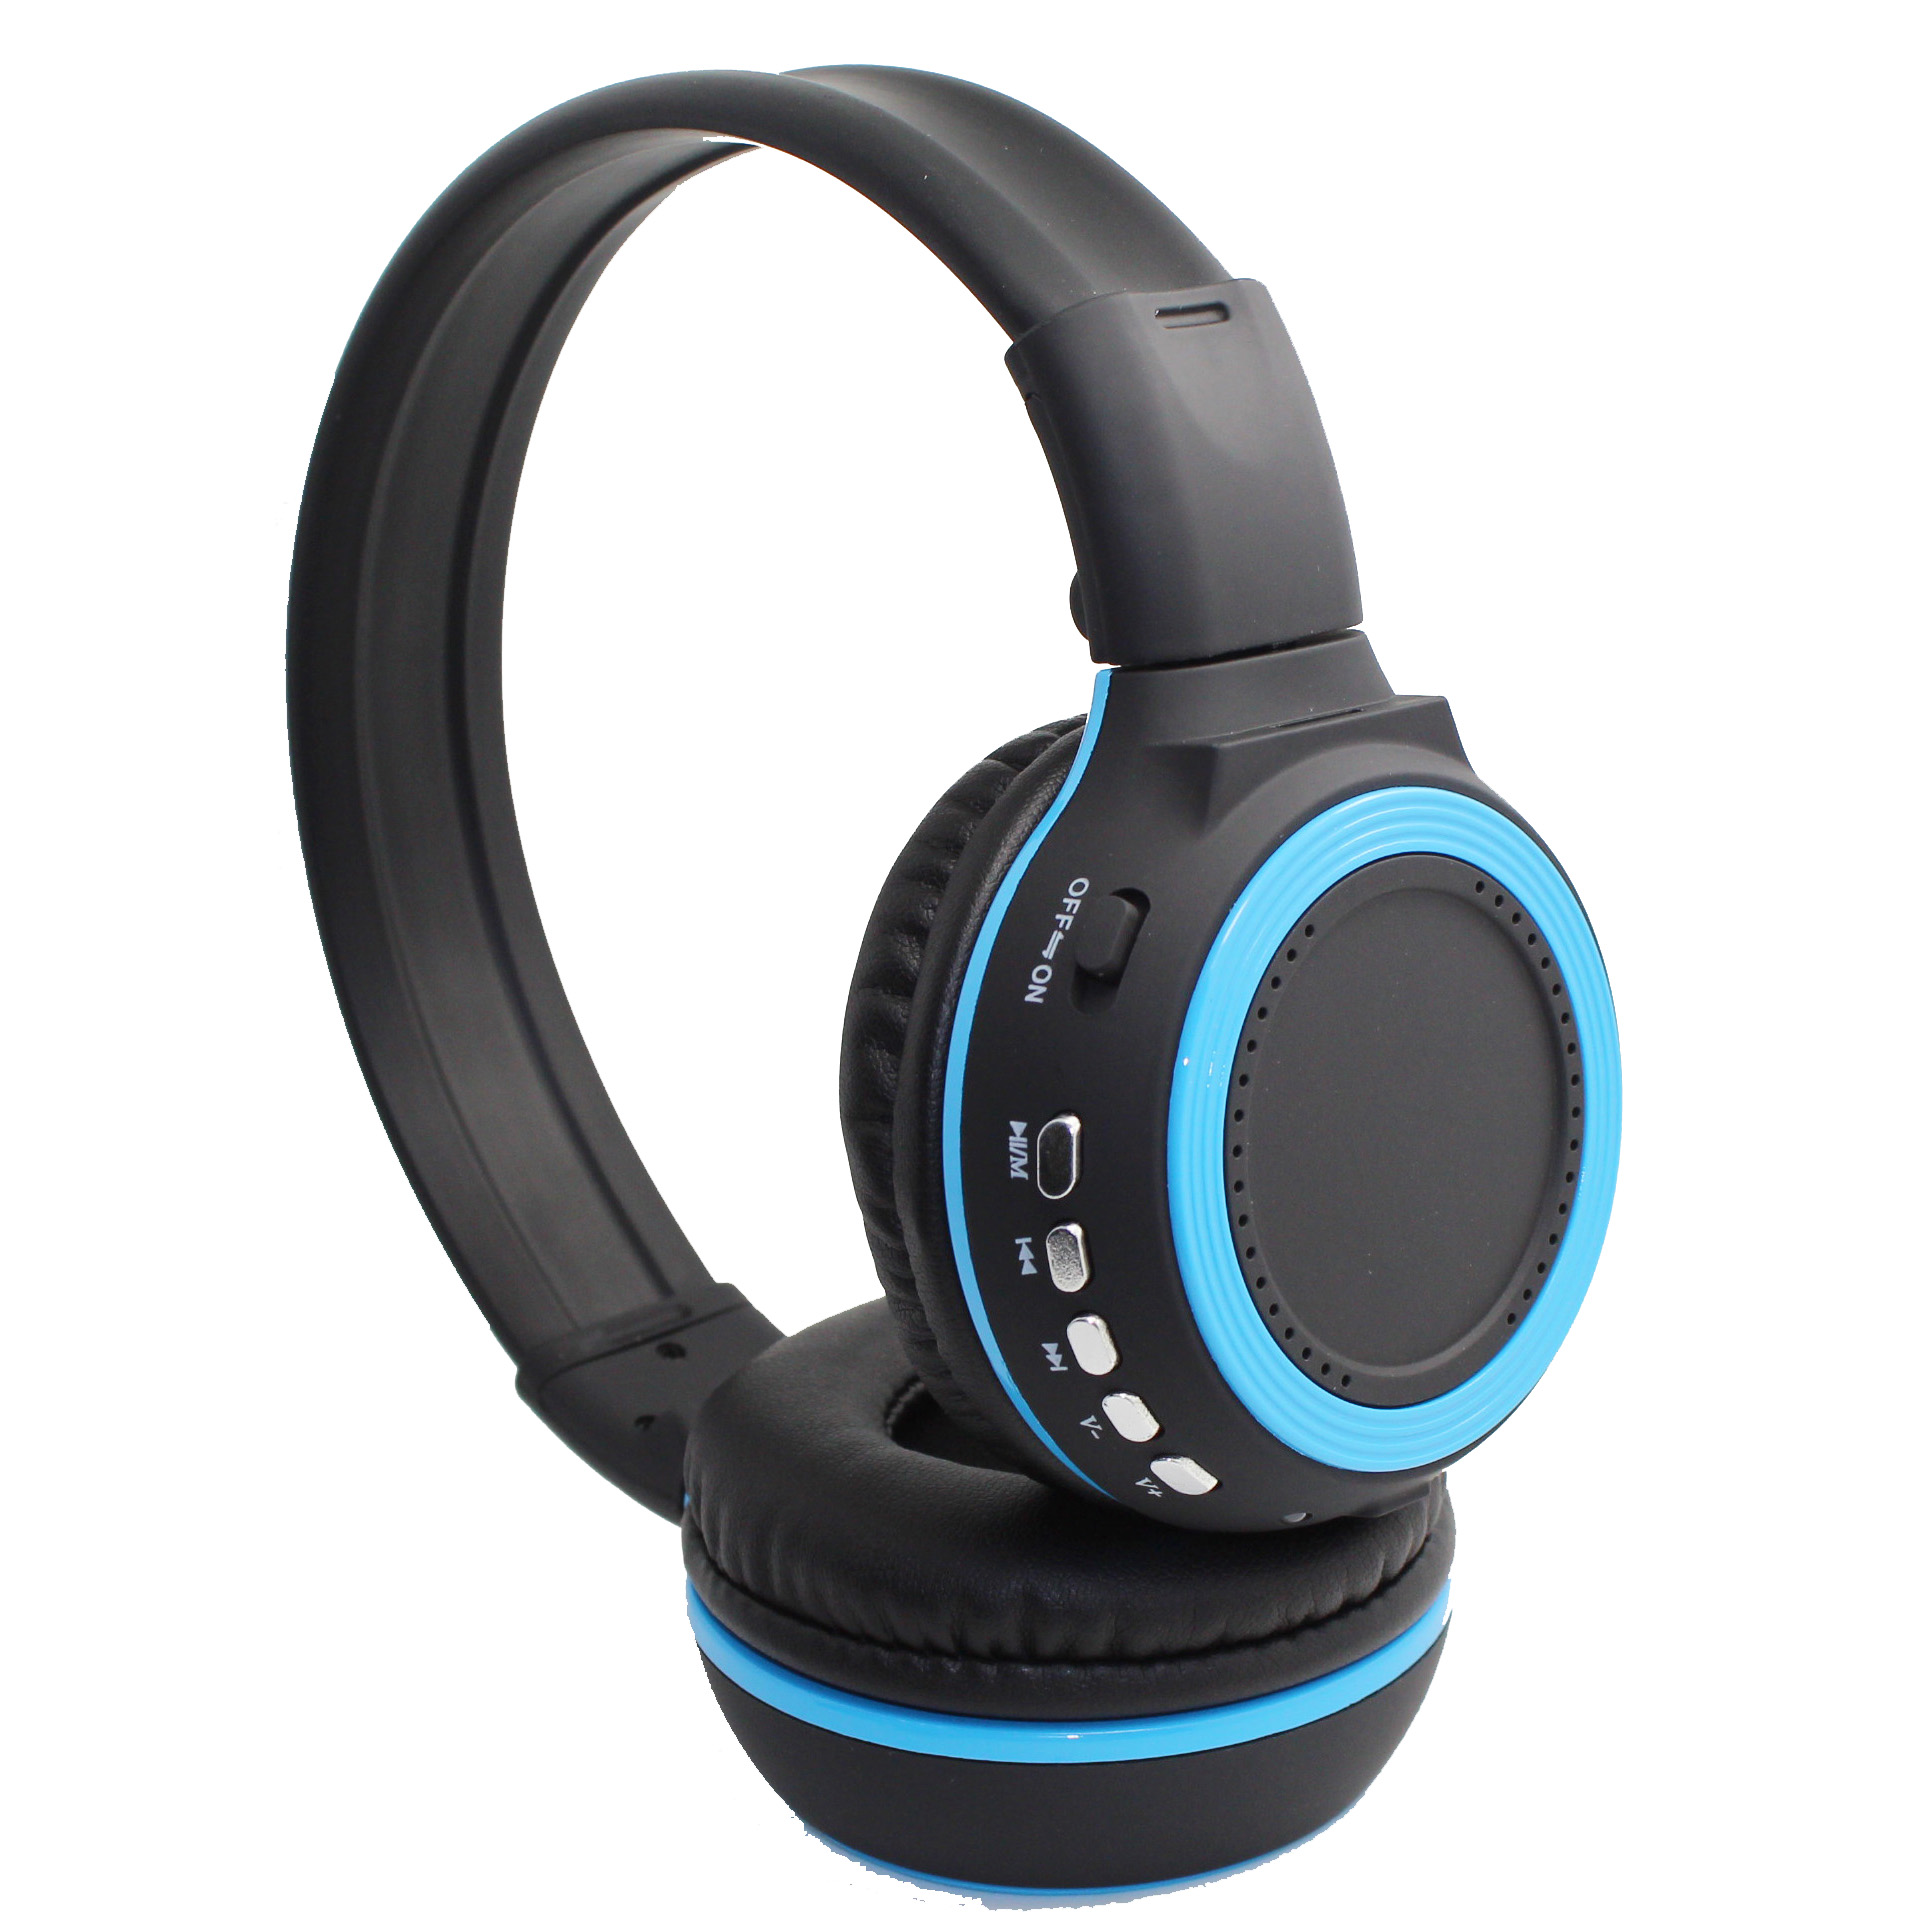 Factory Price Wireless Bluetooth Headphones Stereo Sports Foldable Headsets With Touch Screen Functions Buy Wireless Headphone Wireless Headset Wireless Bluetooth Headset Product On Alibaba Com